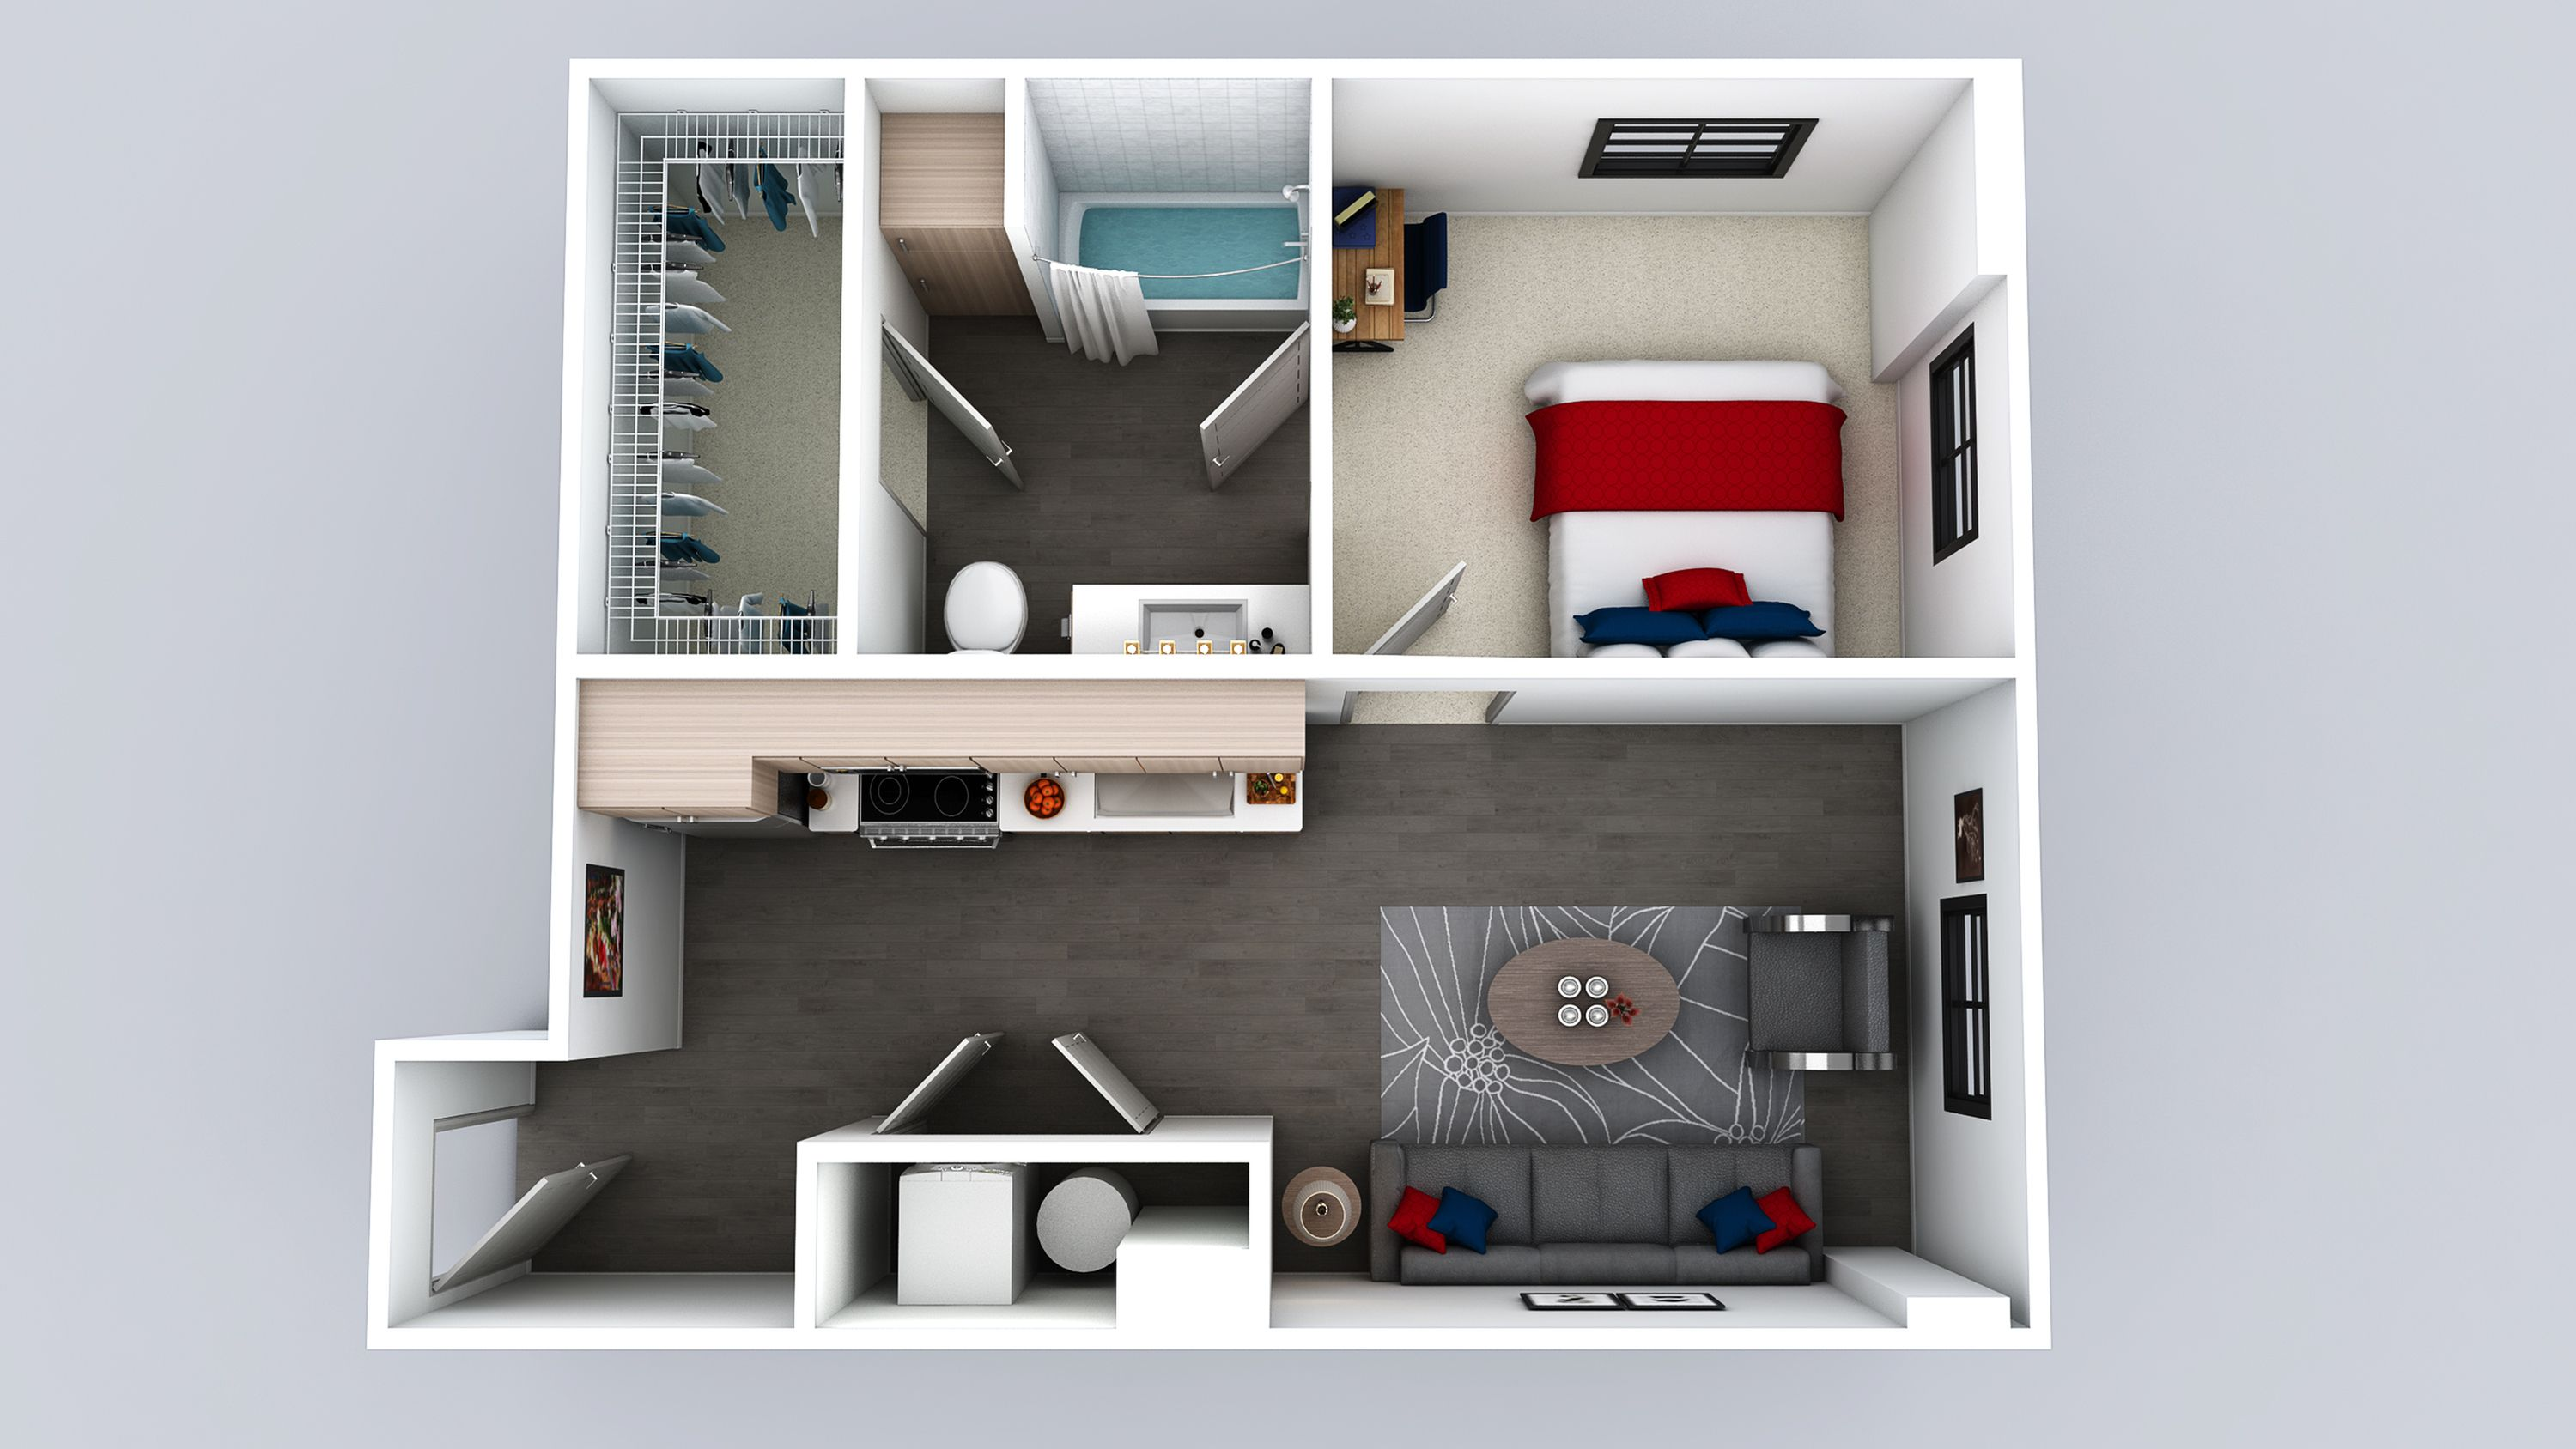 0 for the A6 floor plan. College station apartments